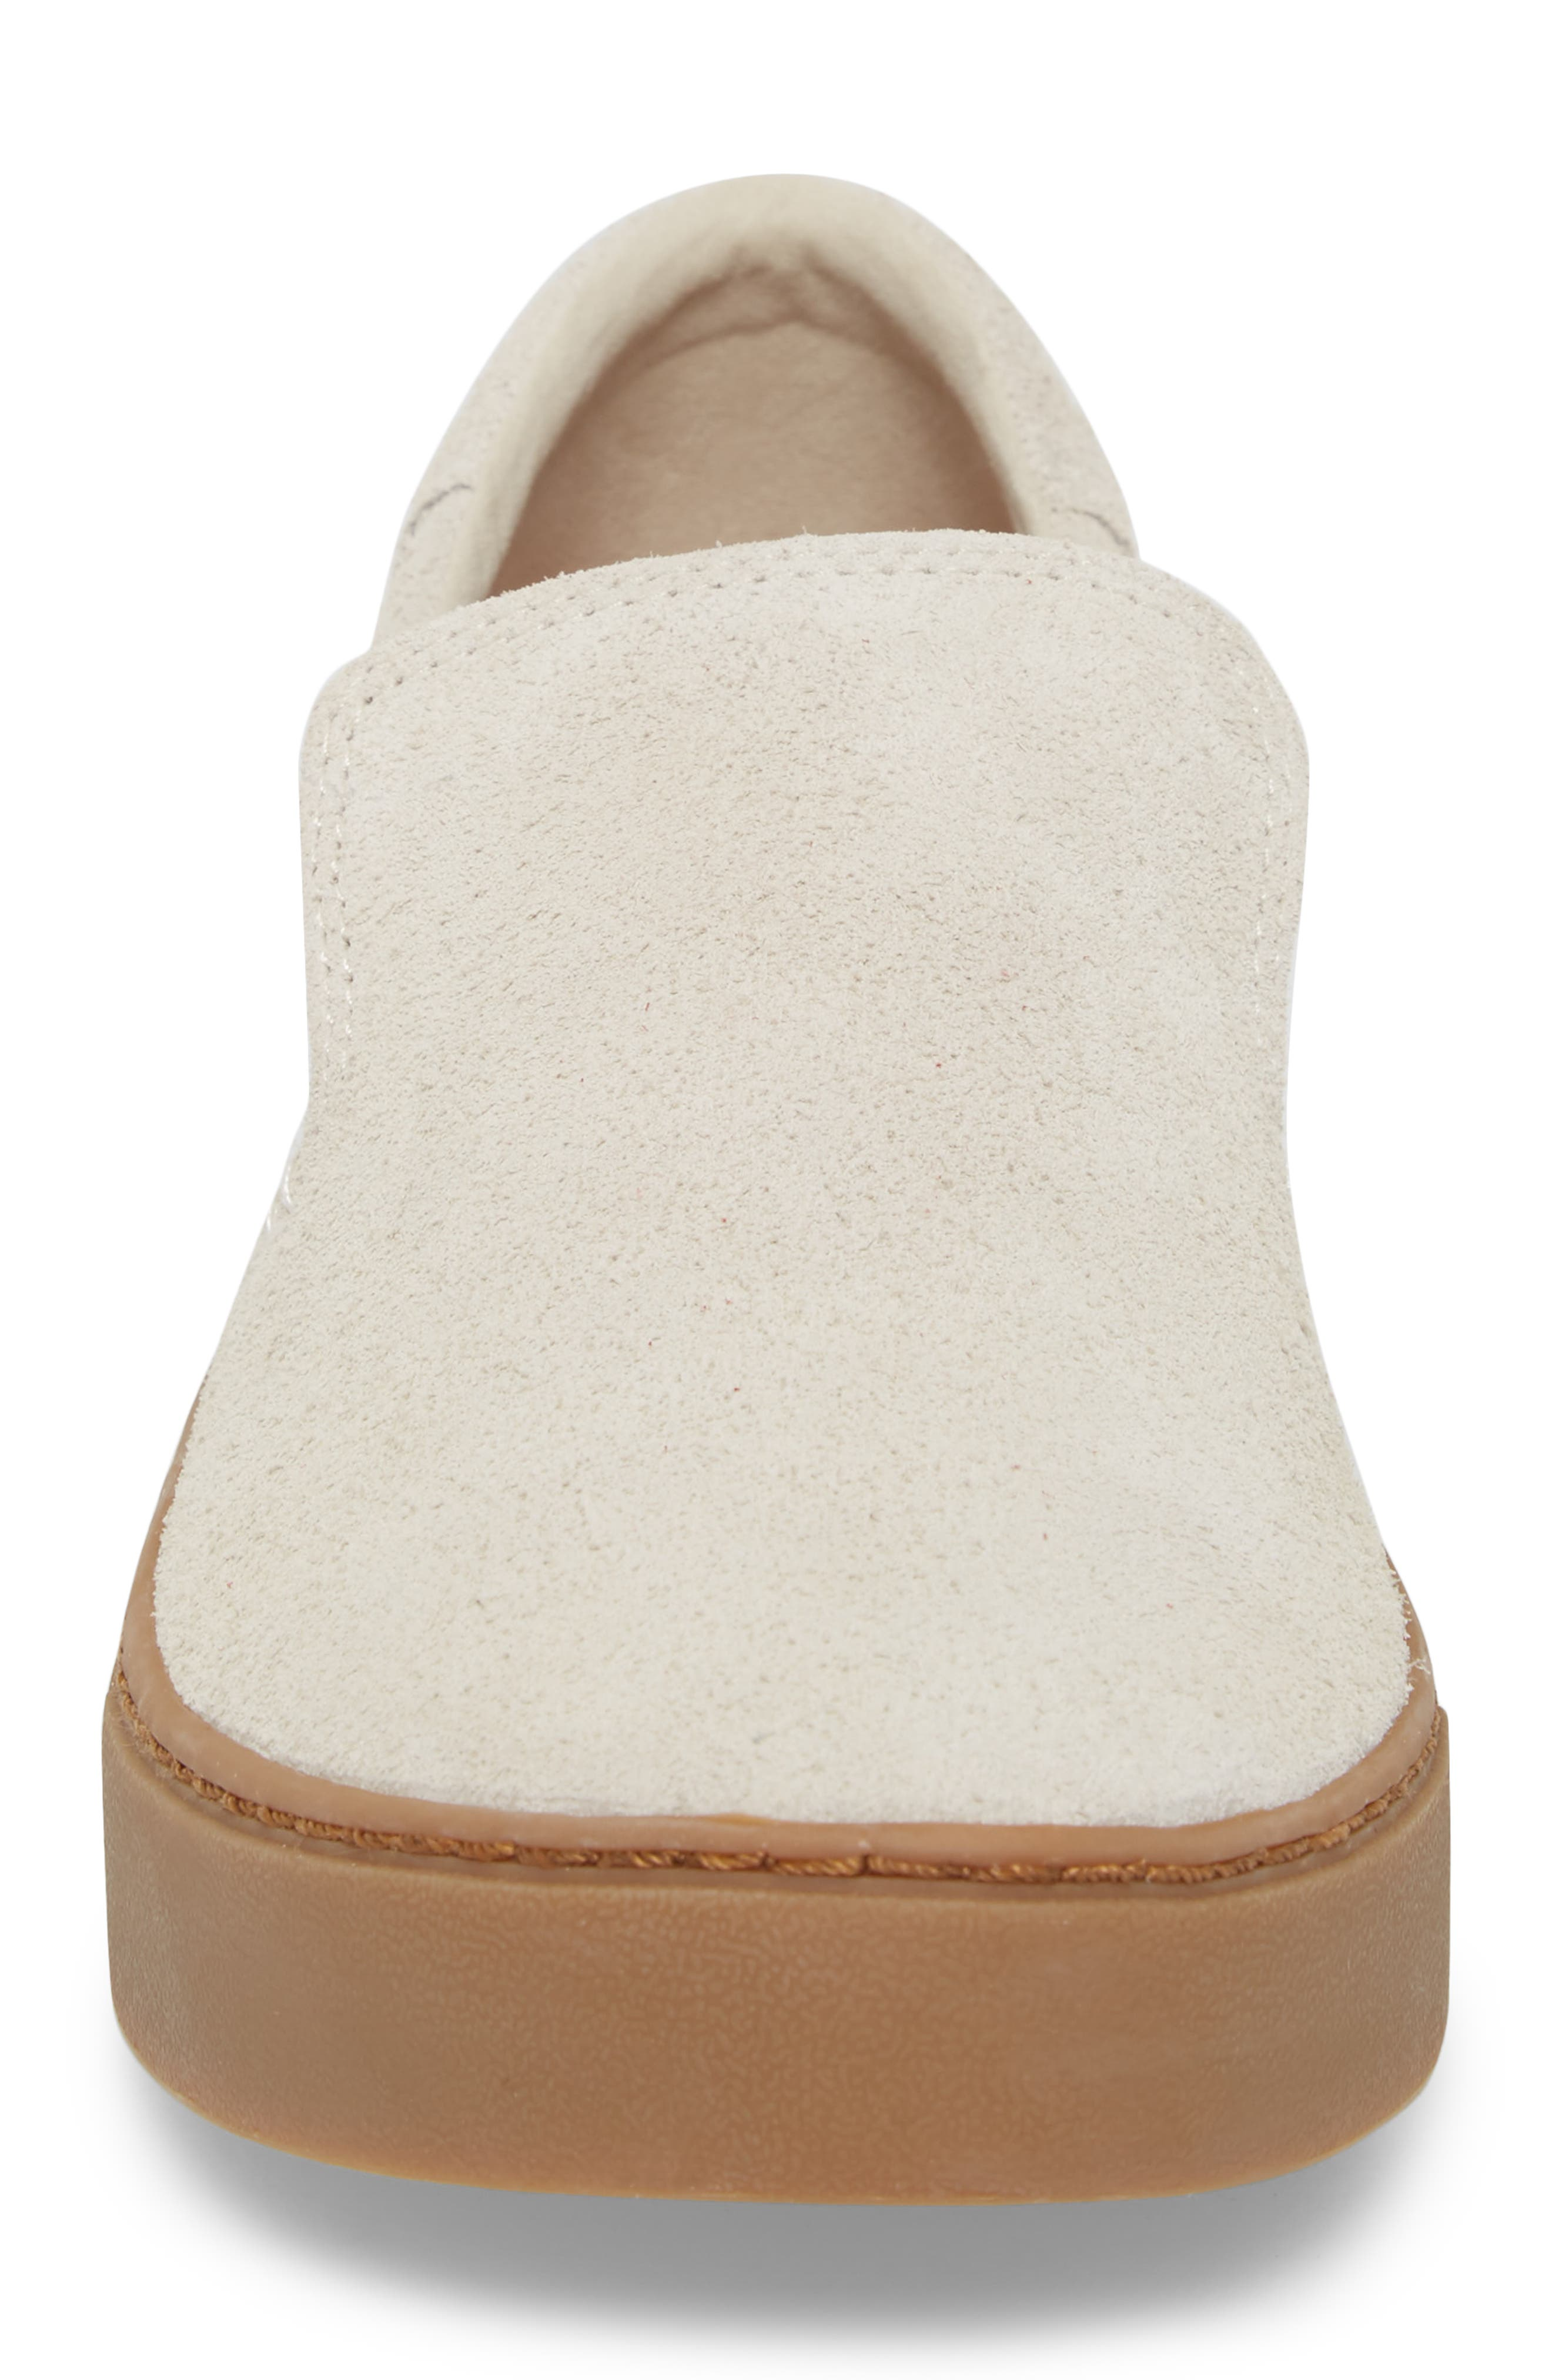 Loma Slip-On Sneaker,                             Alternate thumbnail 4, color,                             Birch Shaggy Suede/ Gum